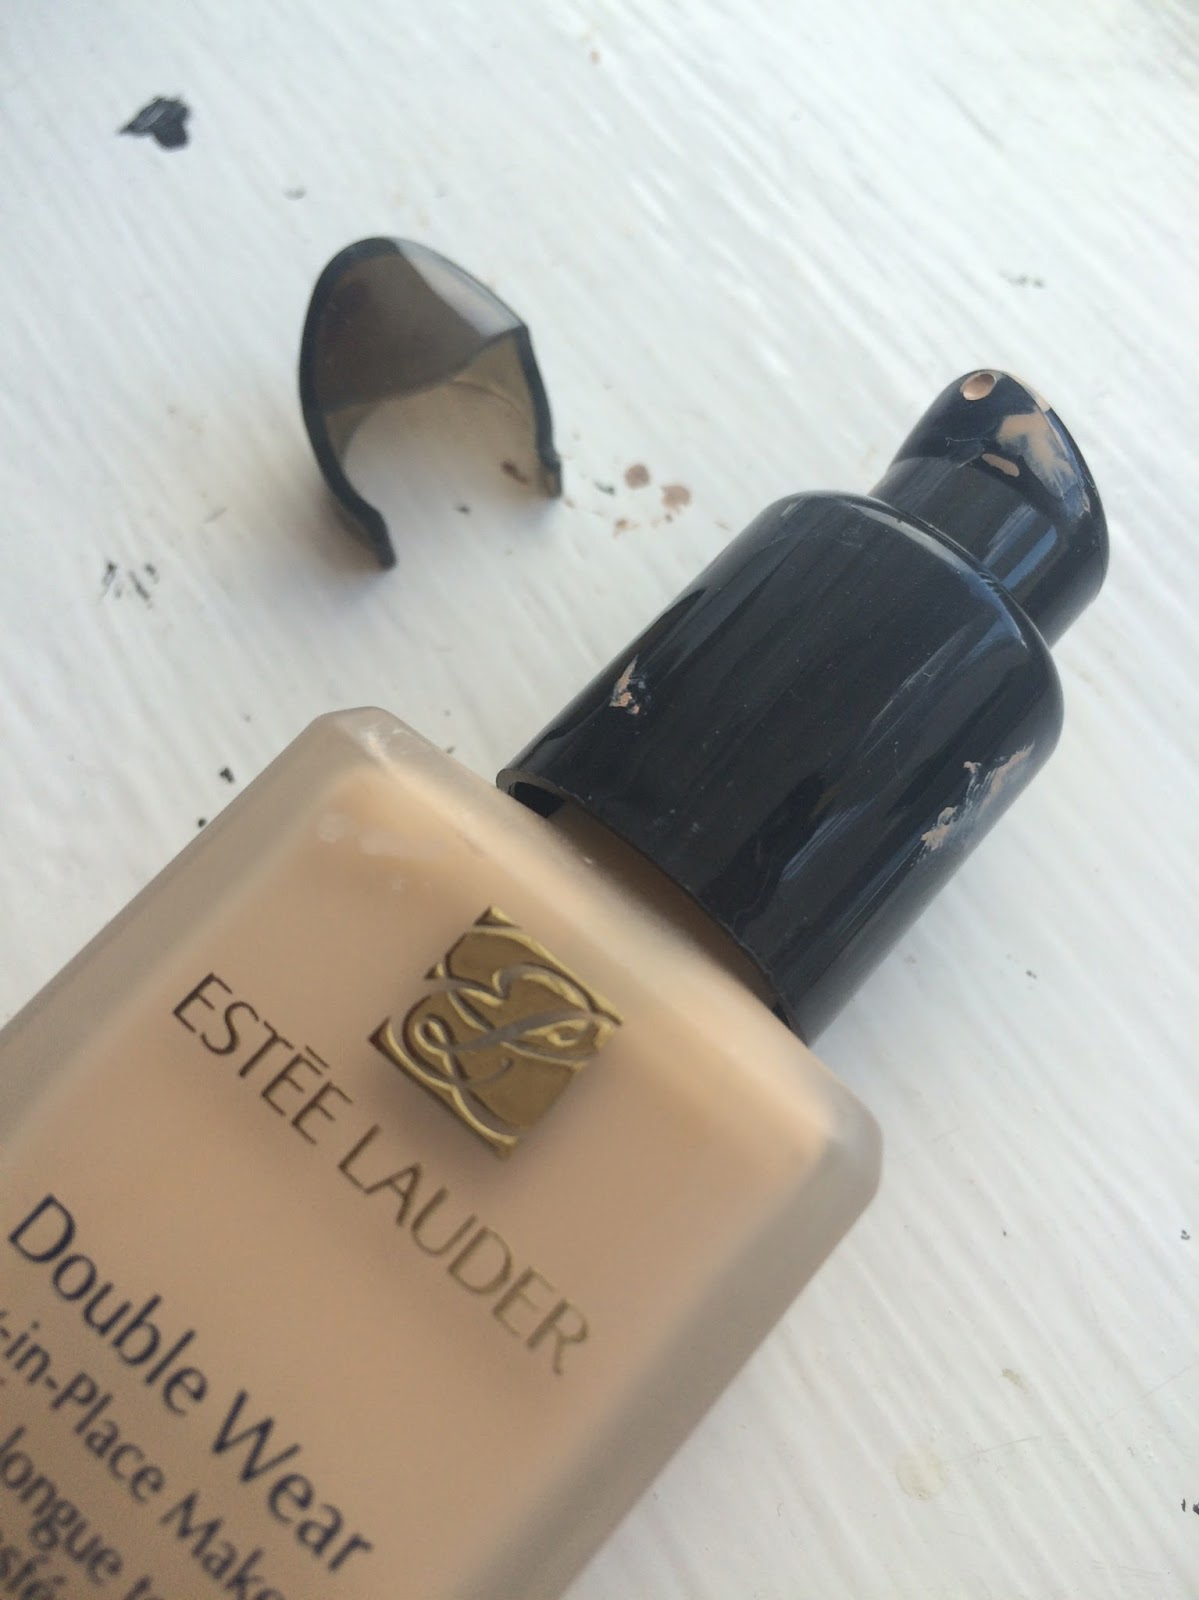 Estee Lauder Double Wear foundation review, 2N1 Desert